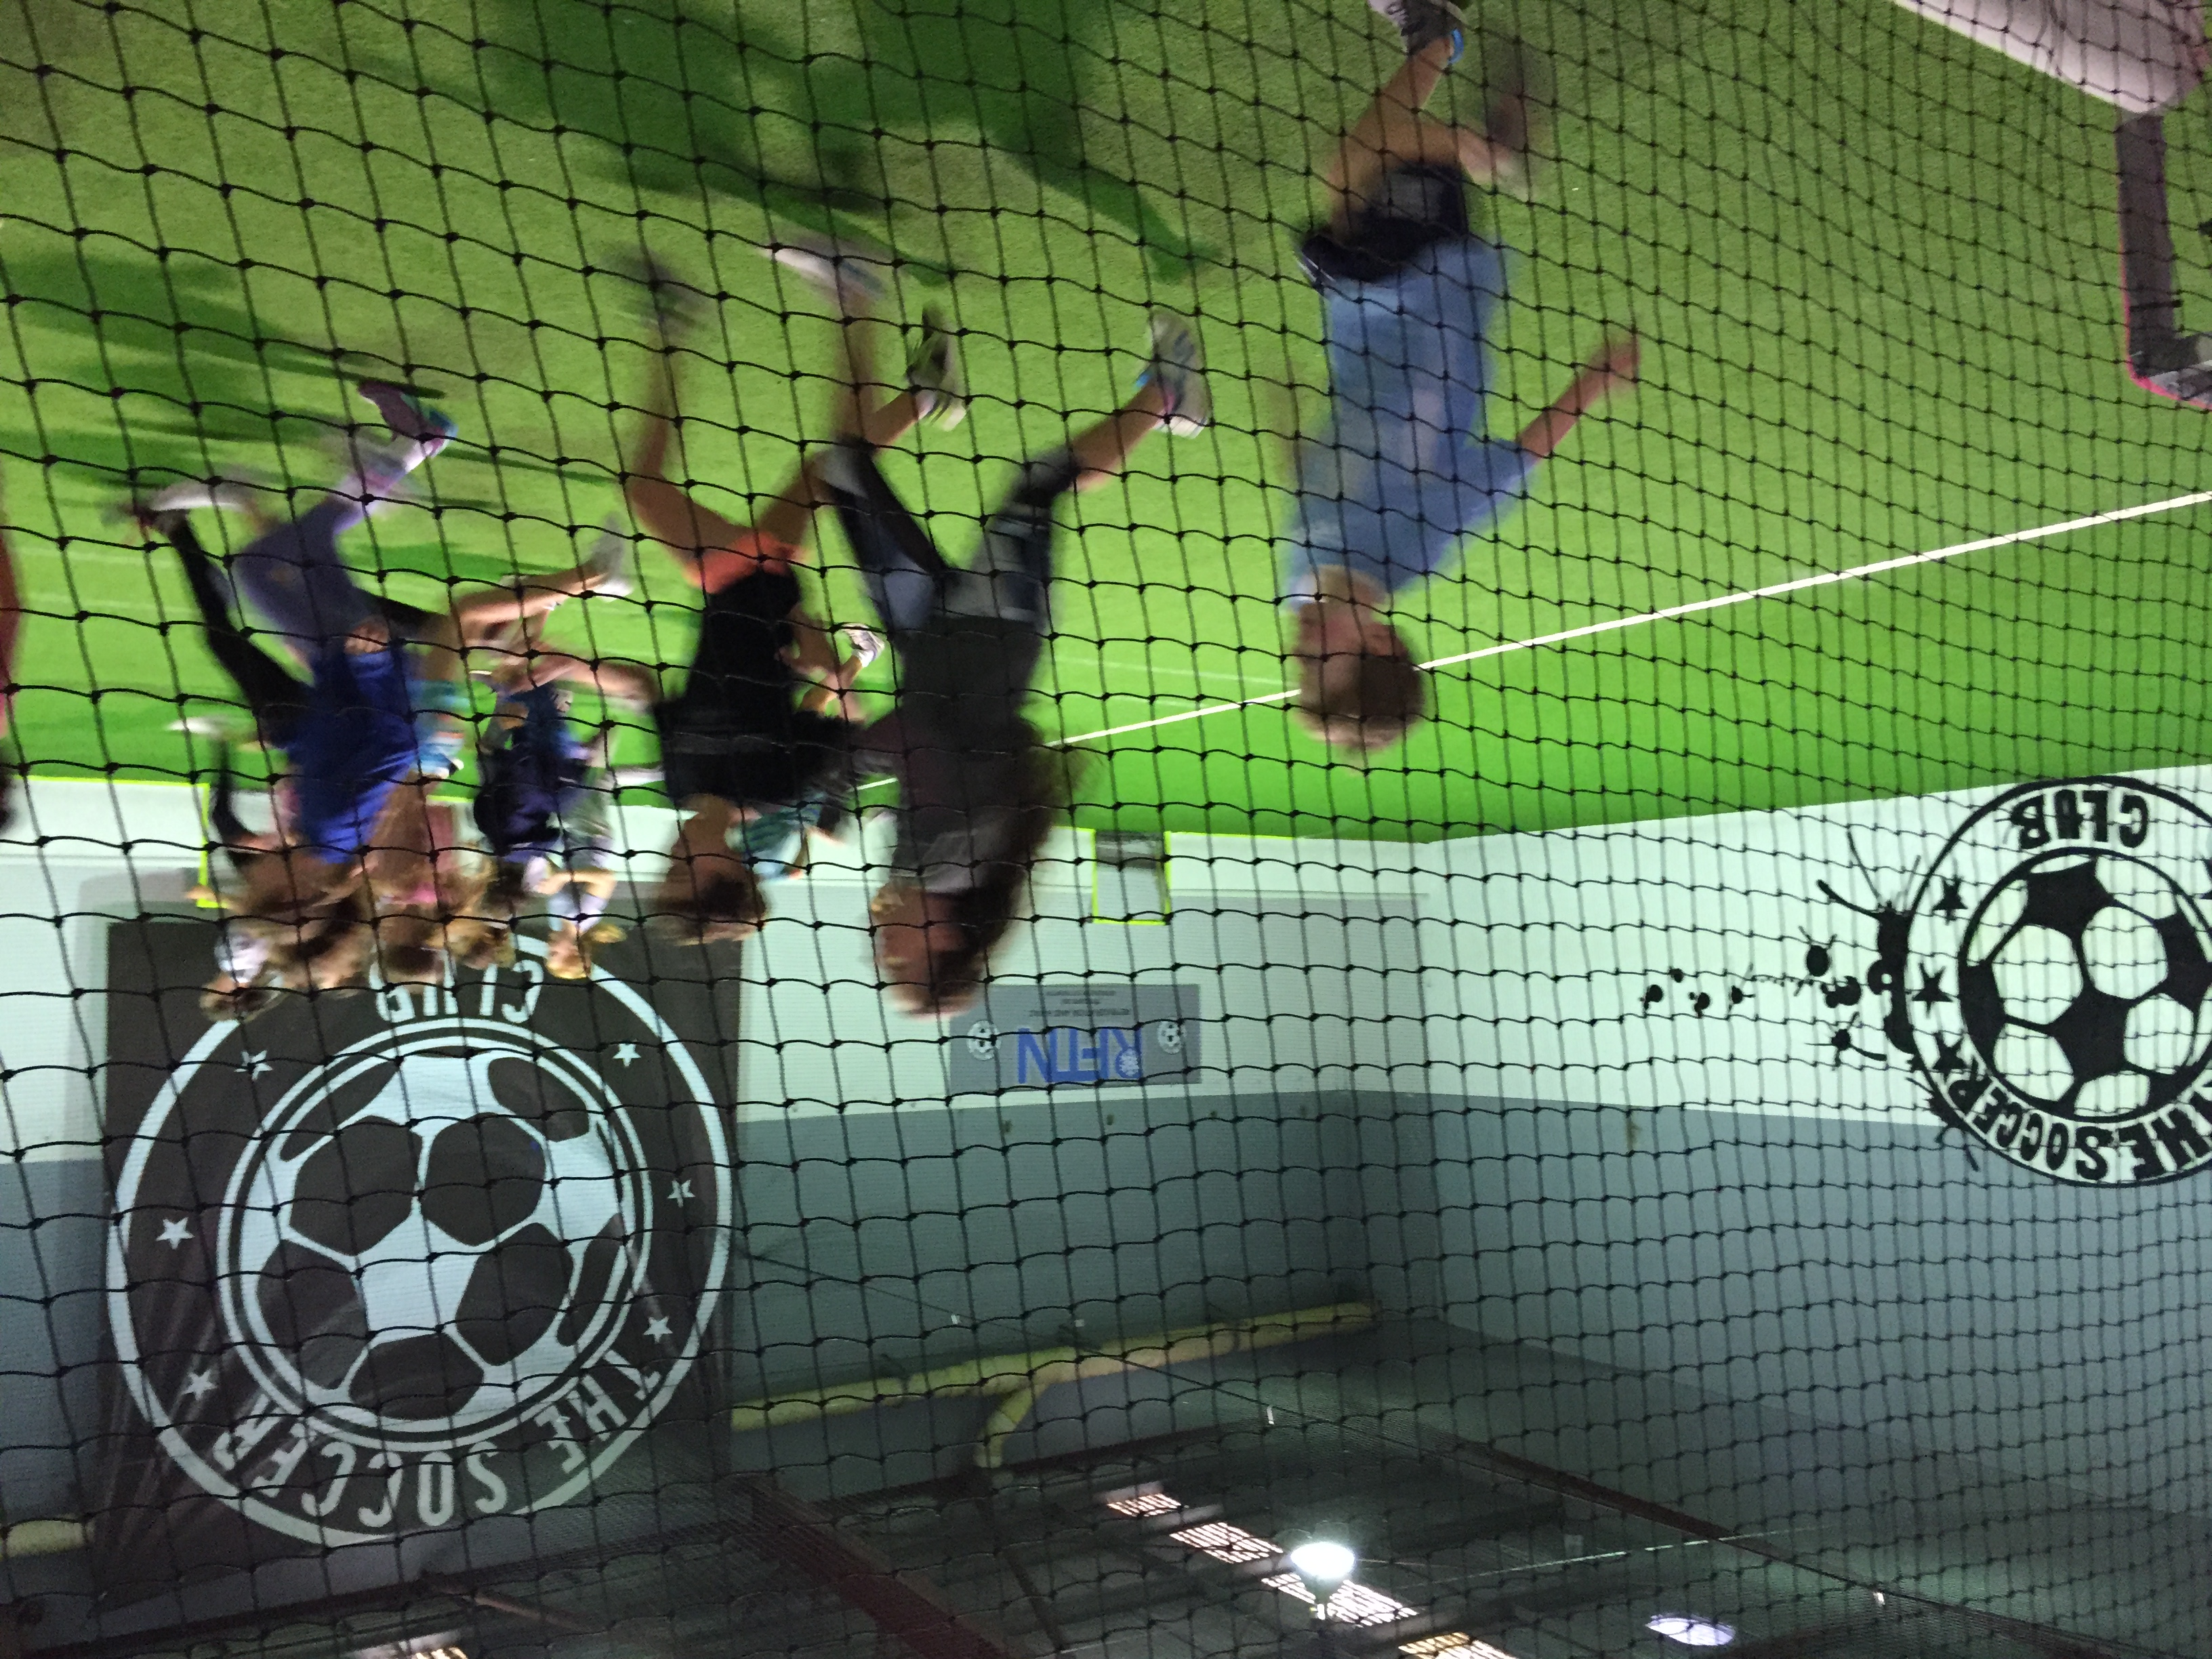 indoor soccer party, venue hire, kids party, sports party, indoor soccer, futsal, bubble soccer, arc